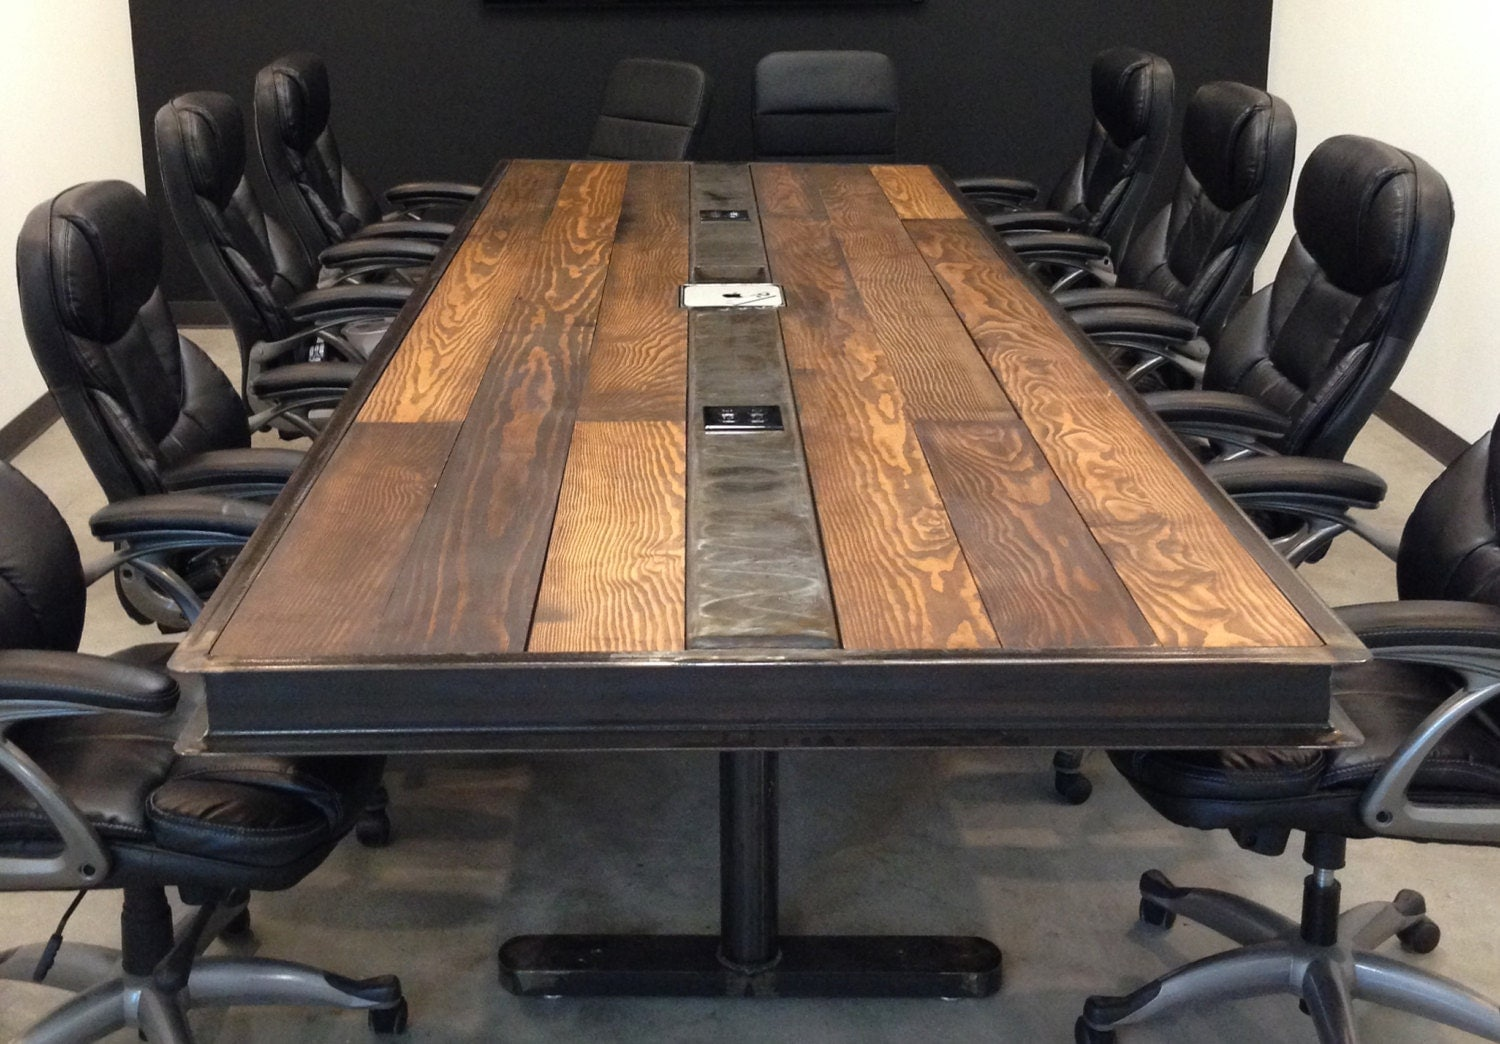 Industrial/Vintage Conference Room Table W/ Raw Steel Body And